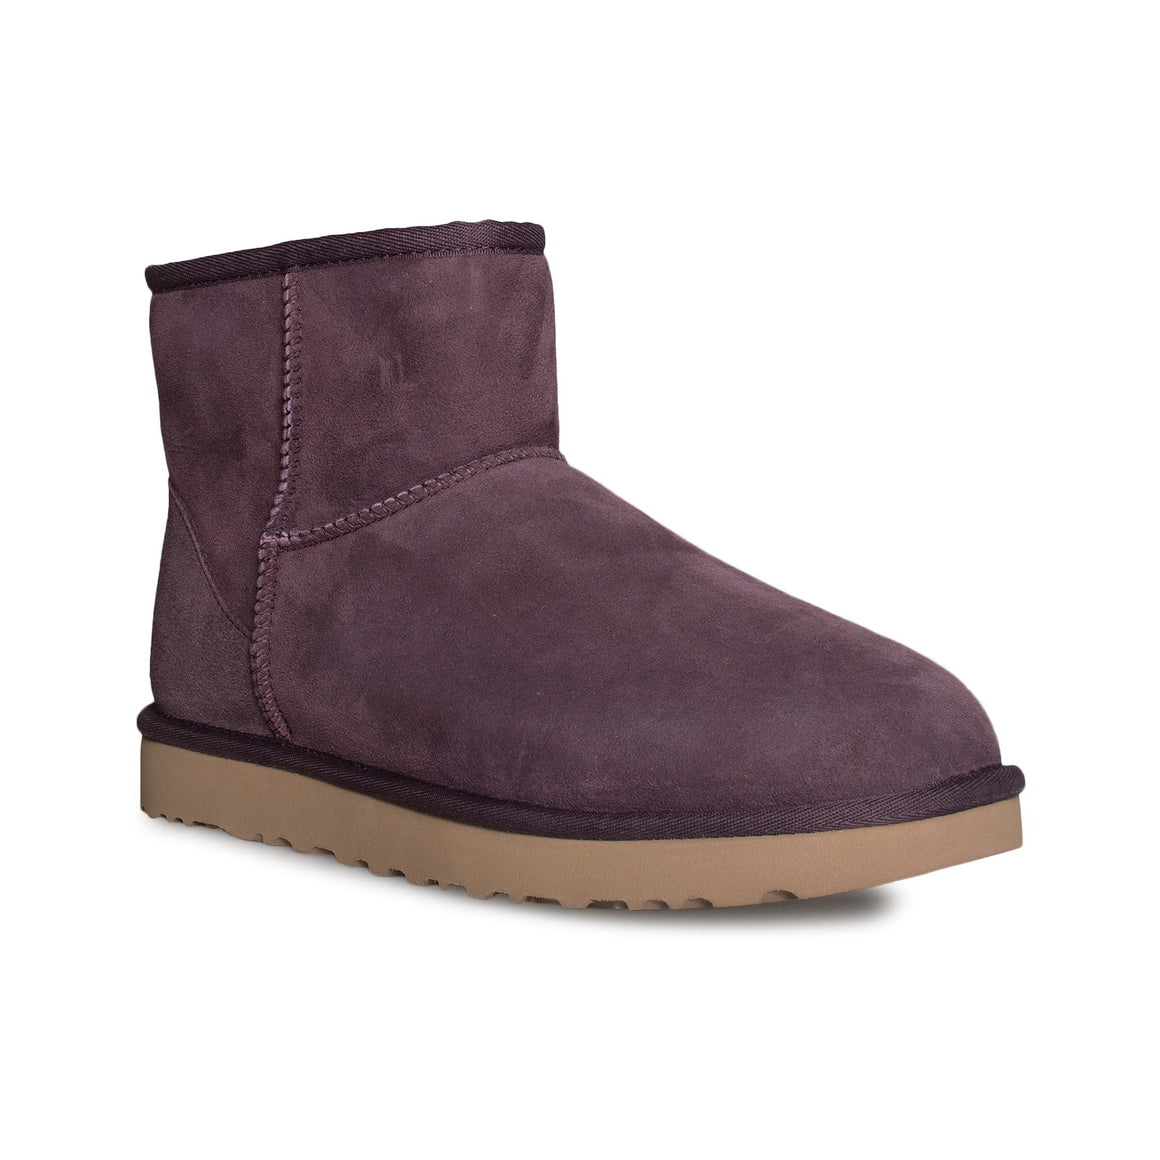 UGG Classic Mini II Port Boots - Women's